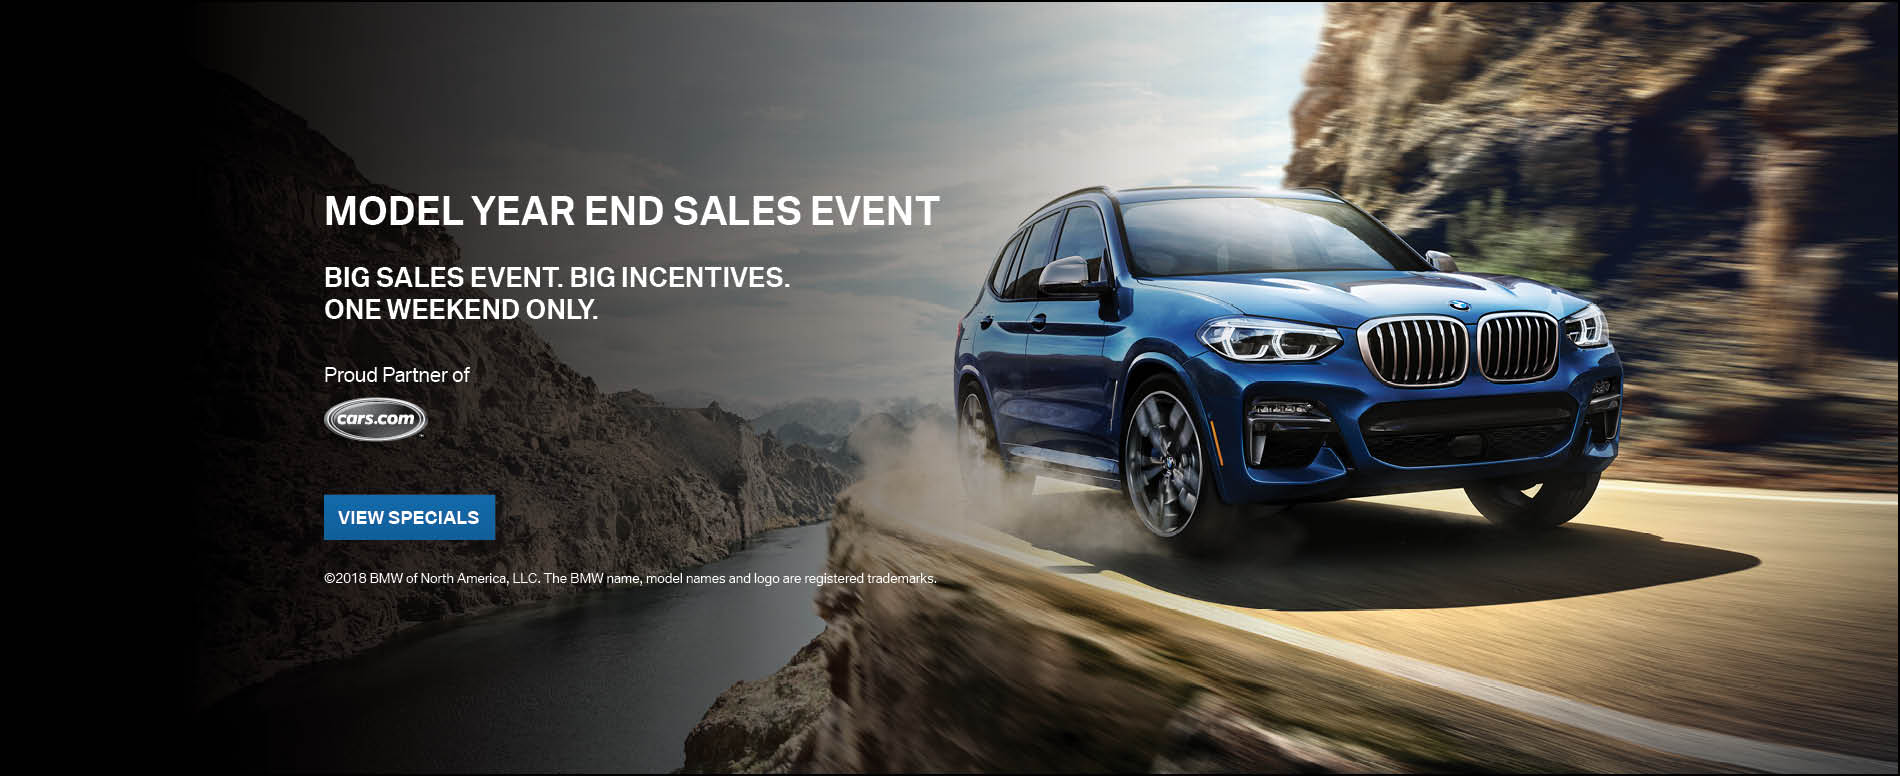 Model Year End Sales Event